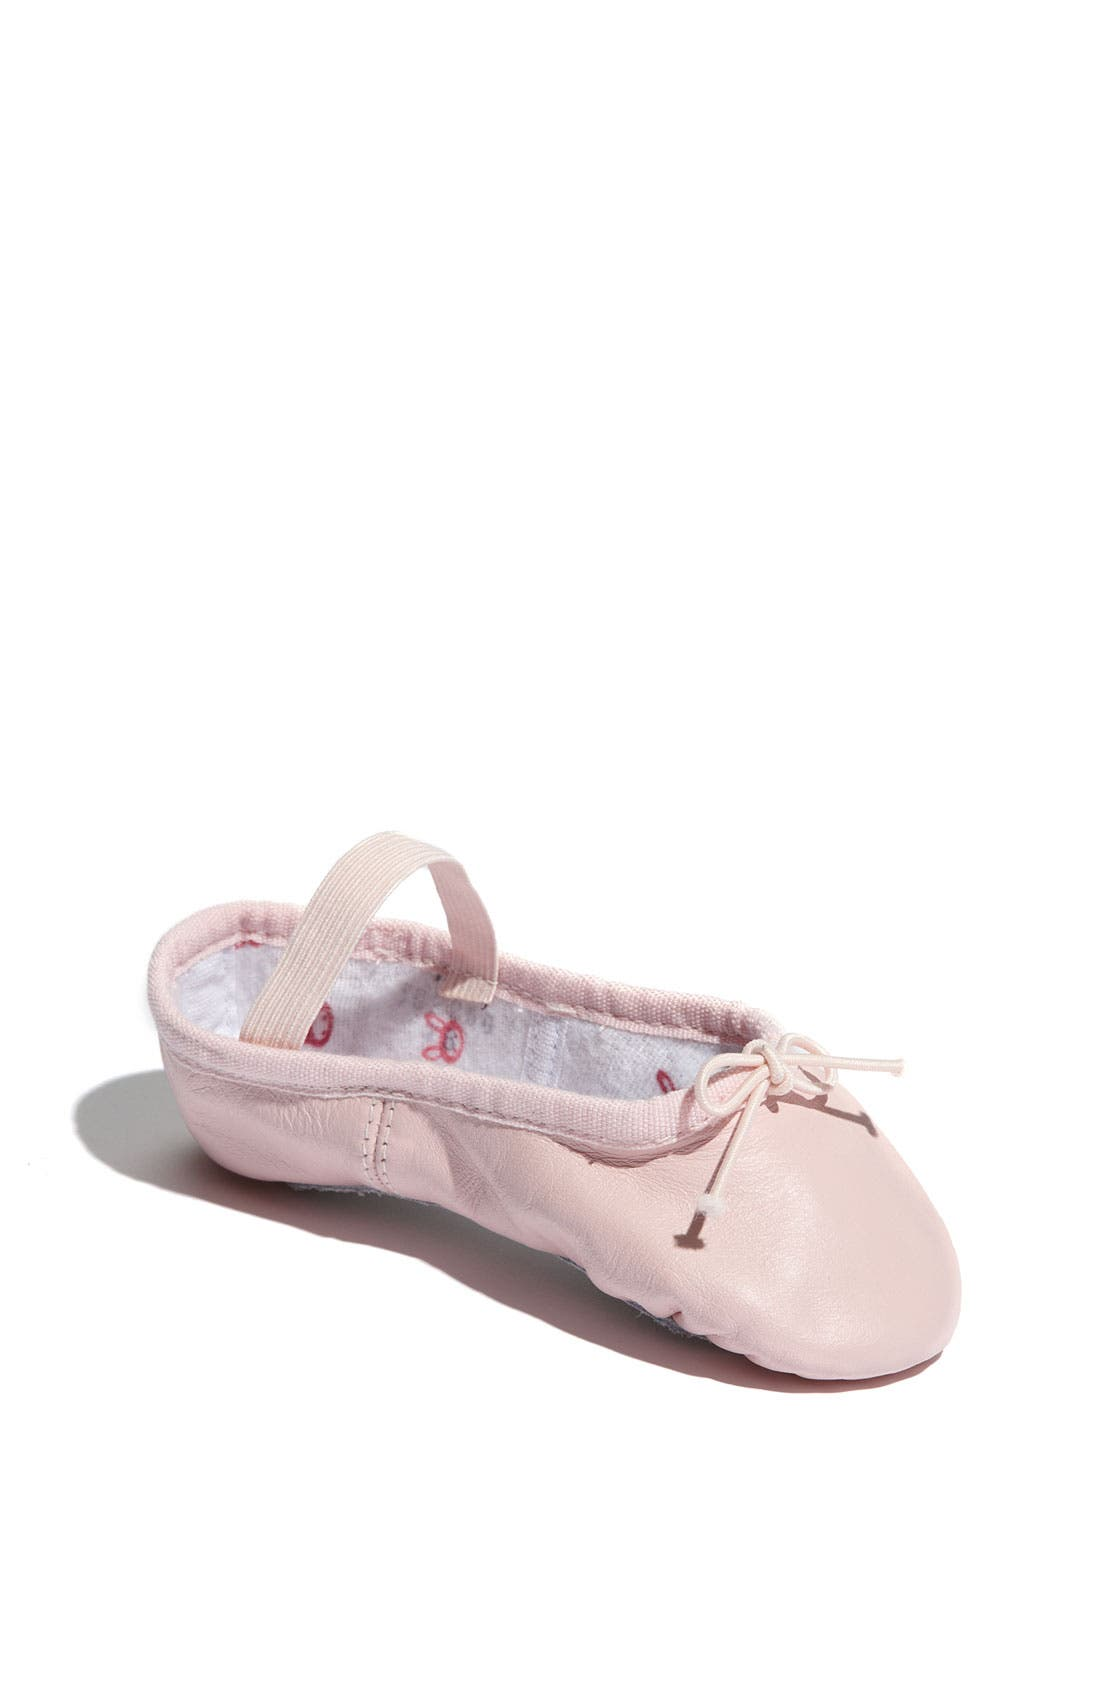 Alternate Image 1 Selected - Bloch 'Bunnyhop' Ballet Flat (Walker, Toddler & Little Kid)